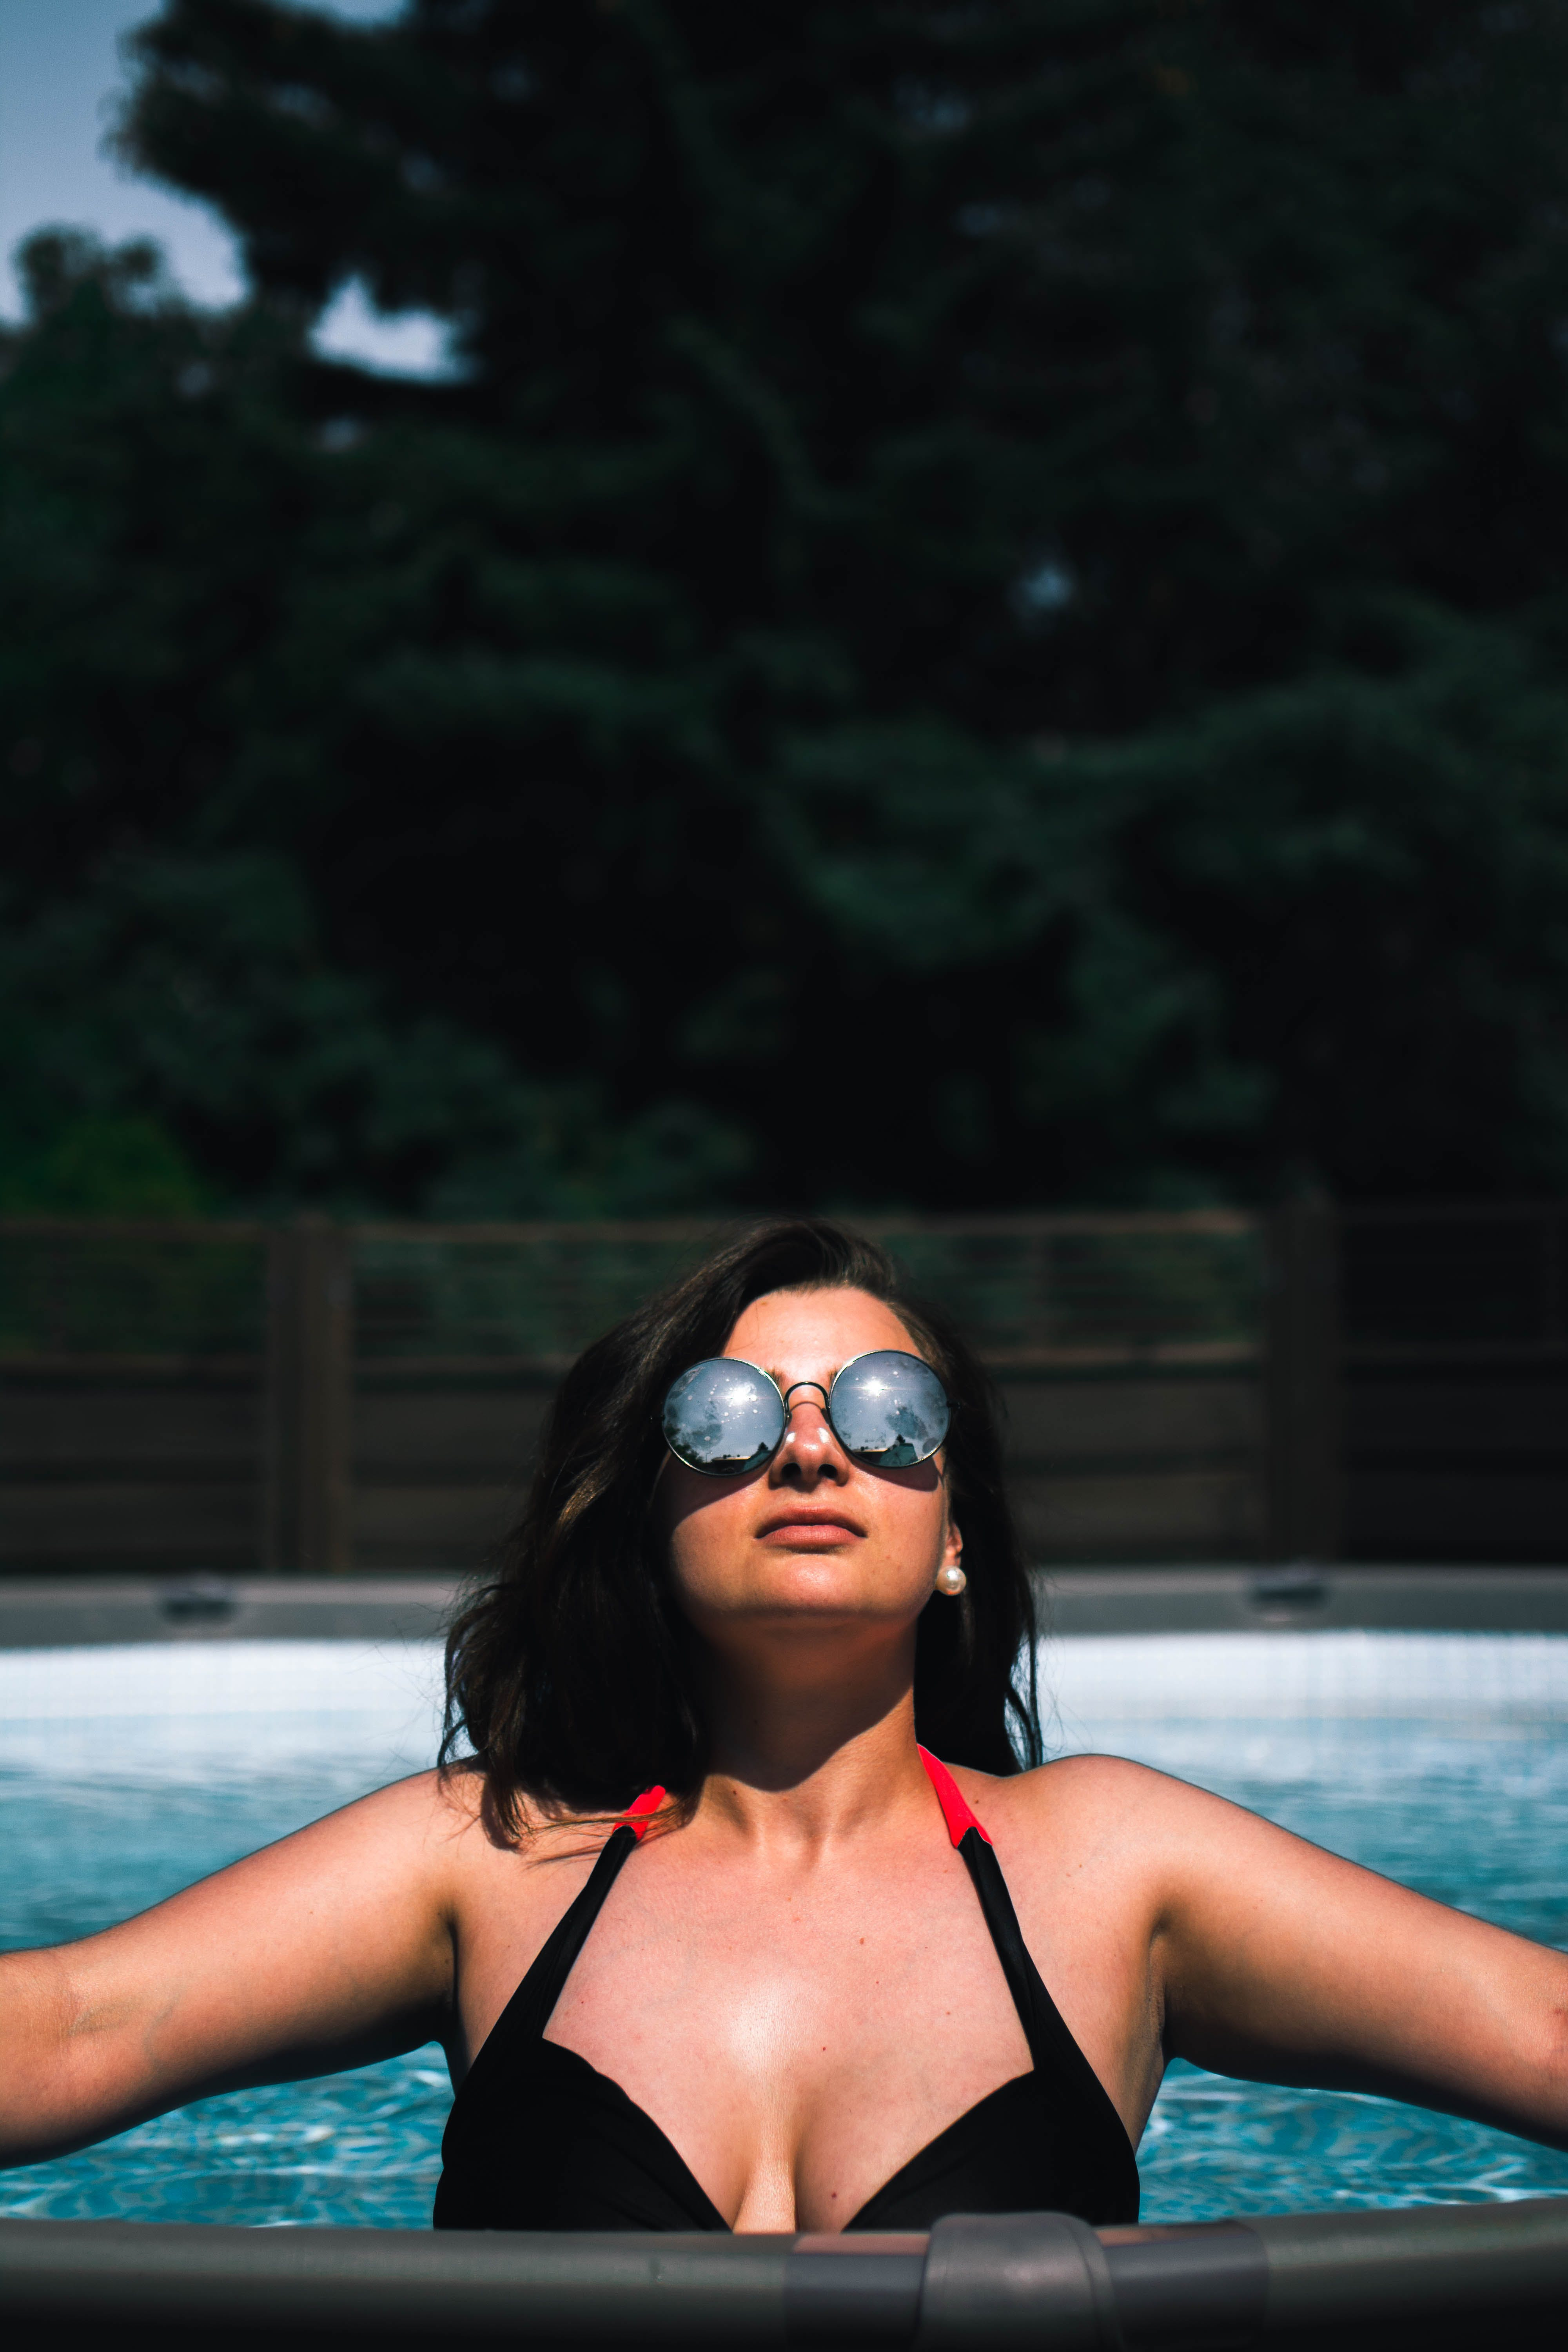 Woman in Pool While Looking Up